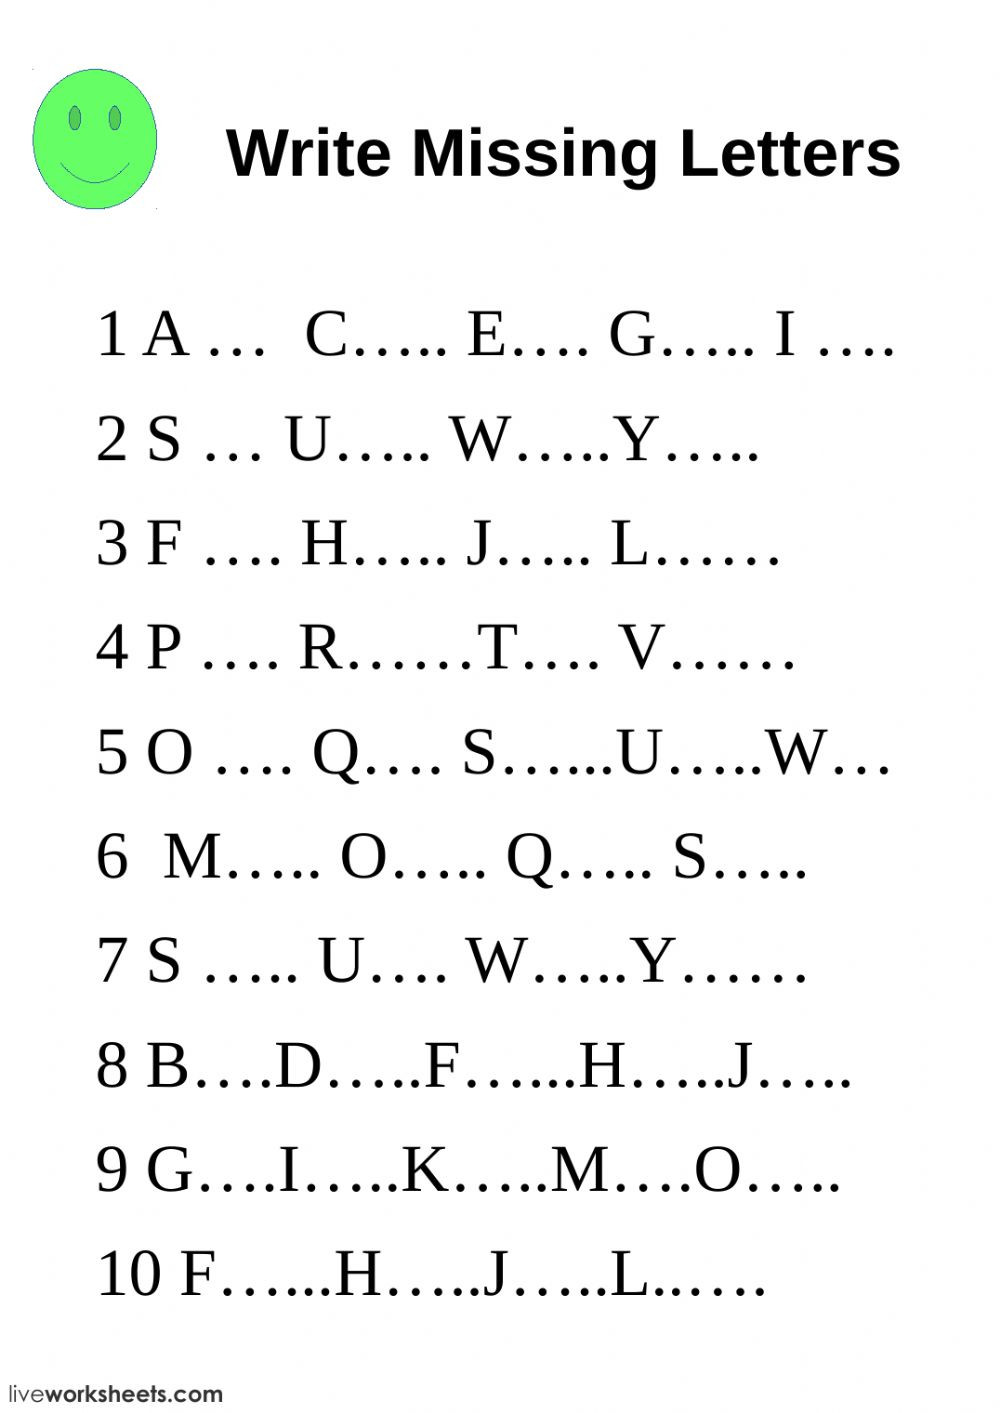 Write missing letters Interactive worksheet